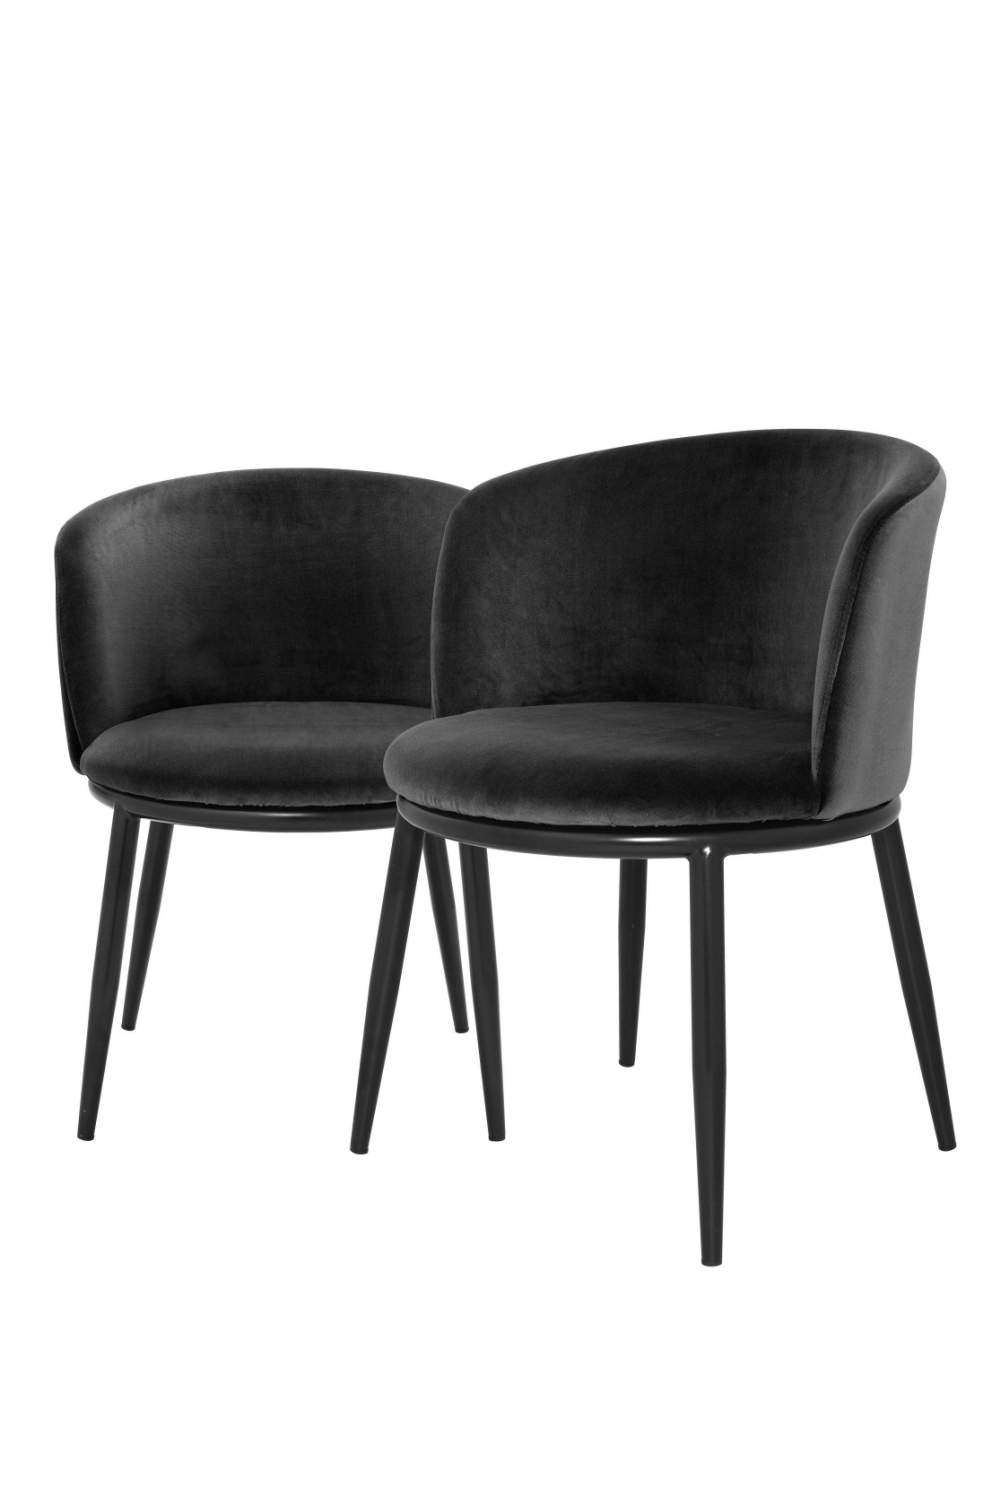 Black Dining Chair Set Of 2 | Eichholtz Filmore | #1 Eichholtz Online Retailer